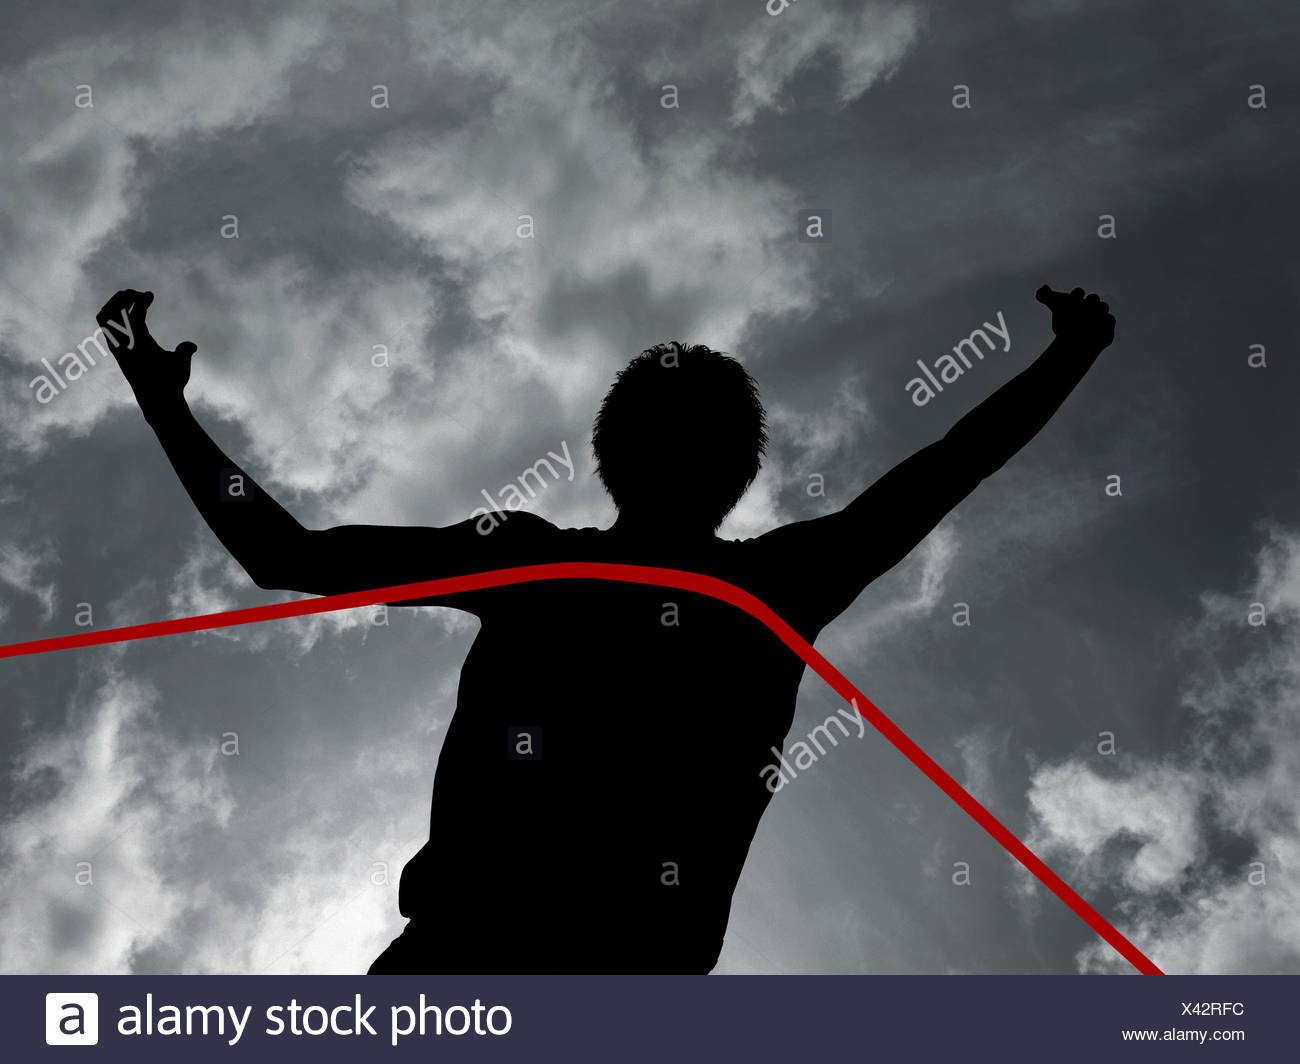 Silhouette of athlete at finish line - Stock Image